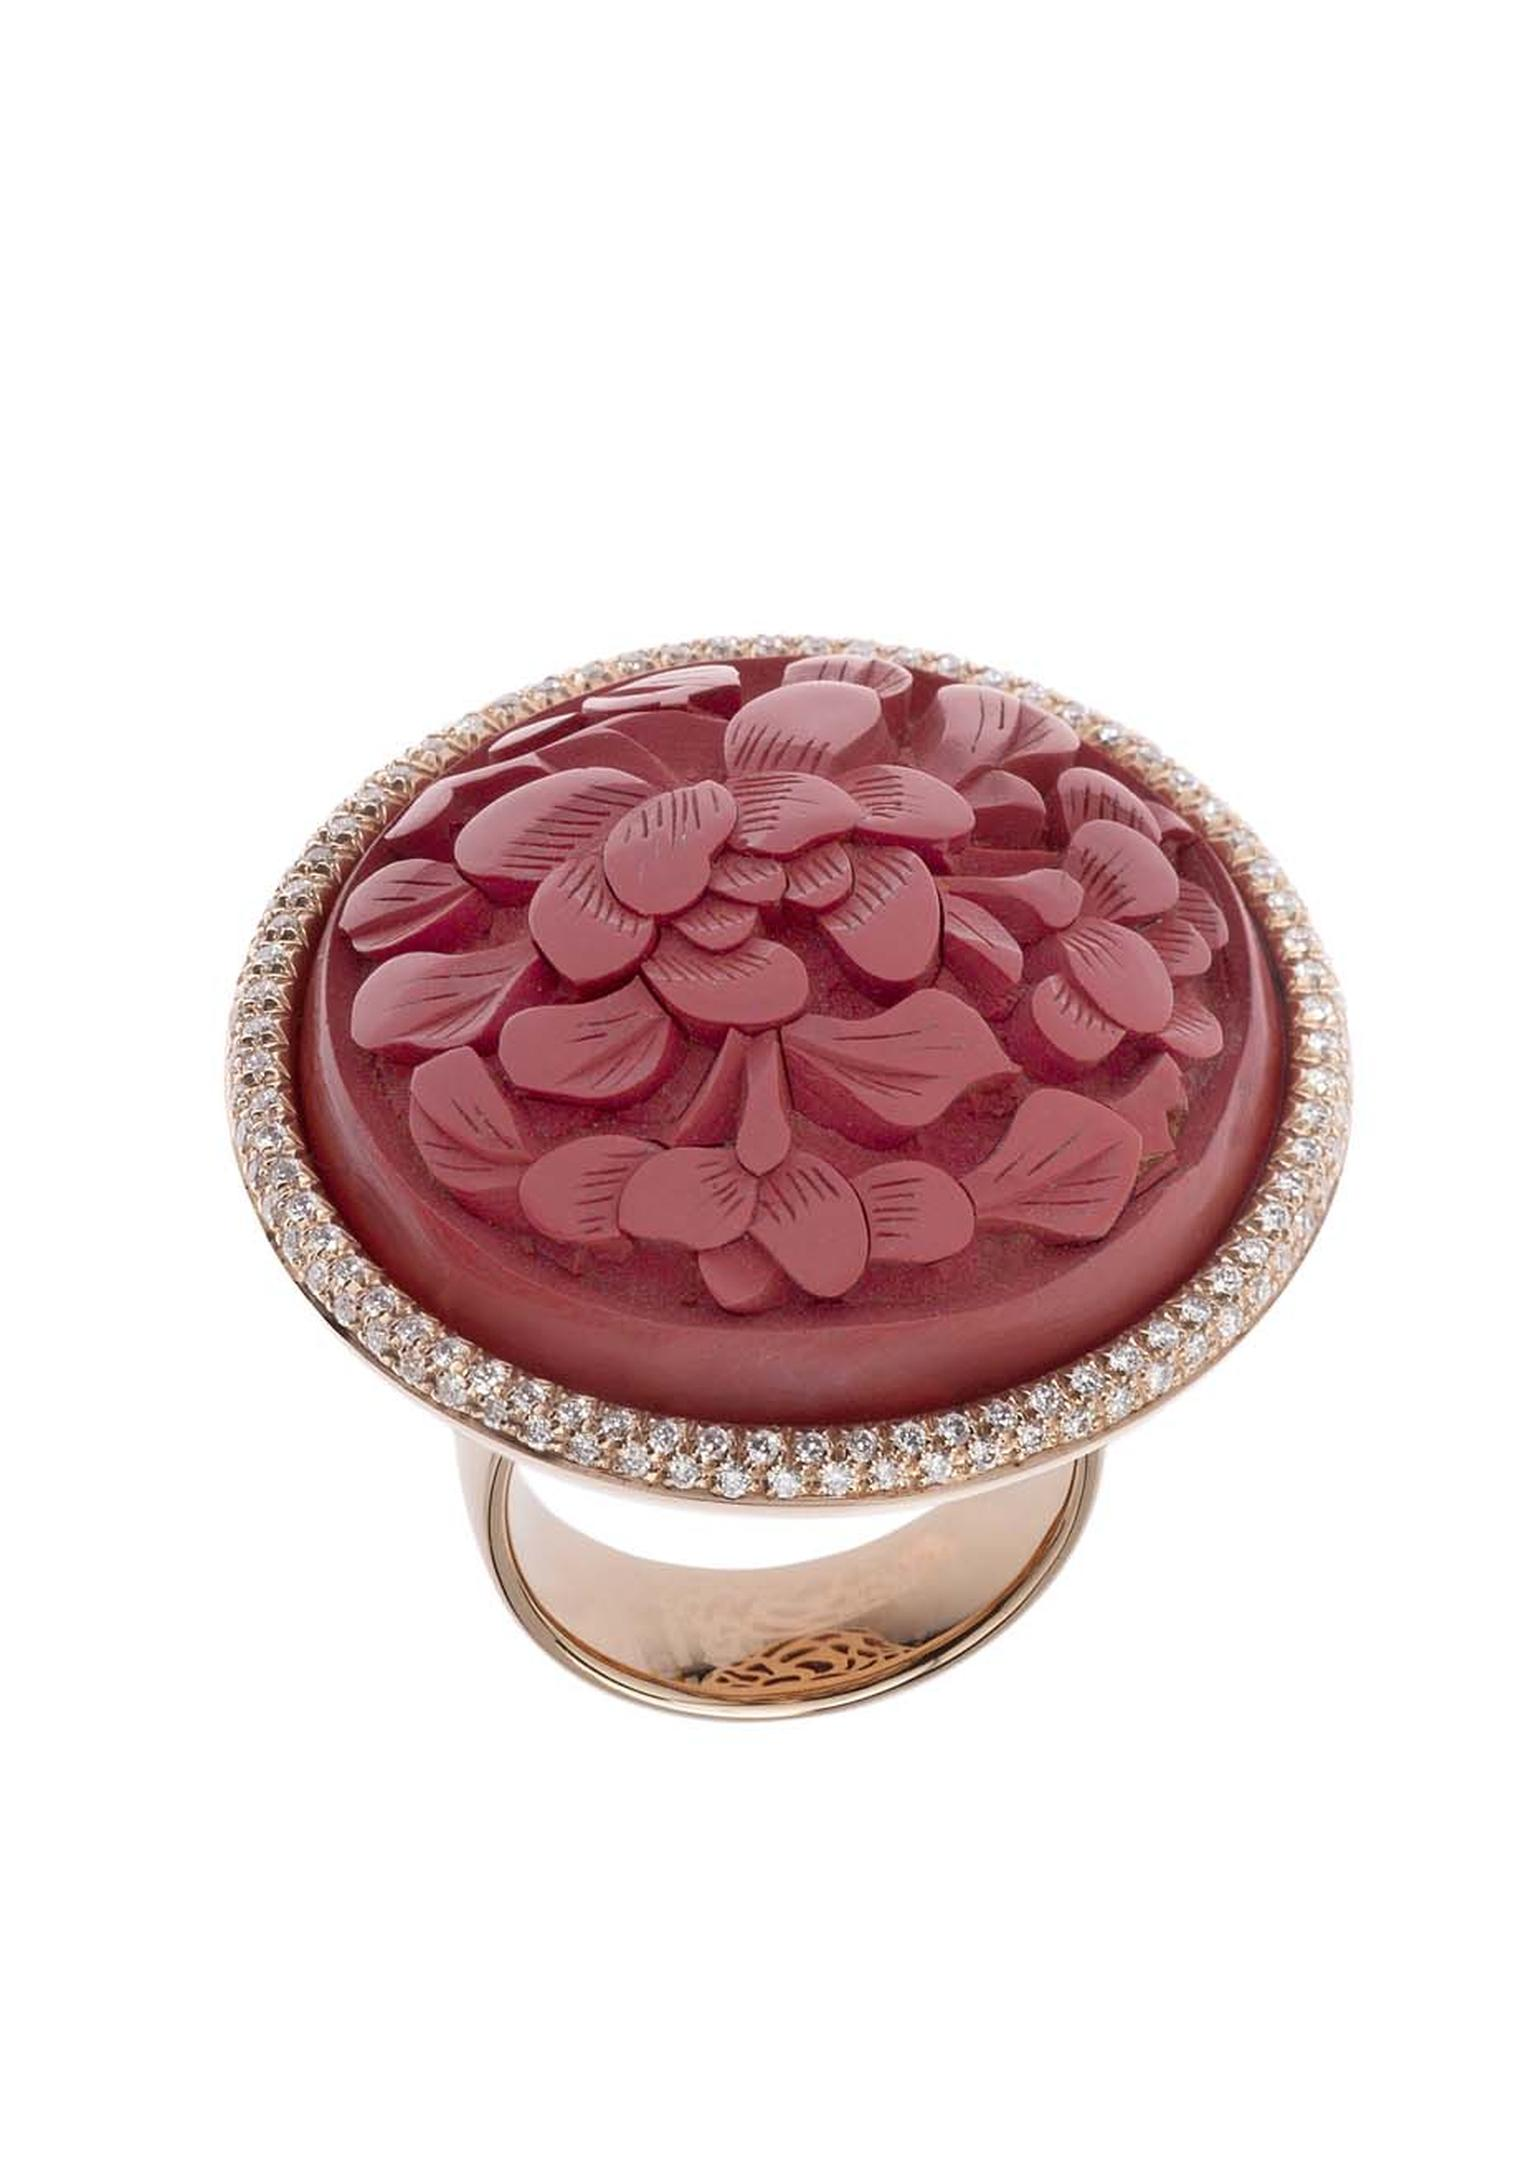 Francesca Villa rose gold and diamond button ring decorated with antique Chinese red laque (£3,949).